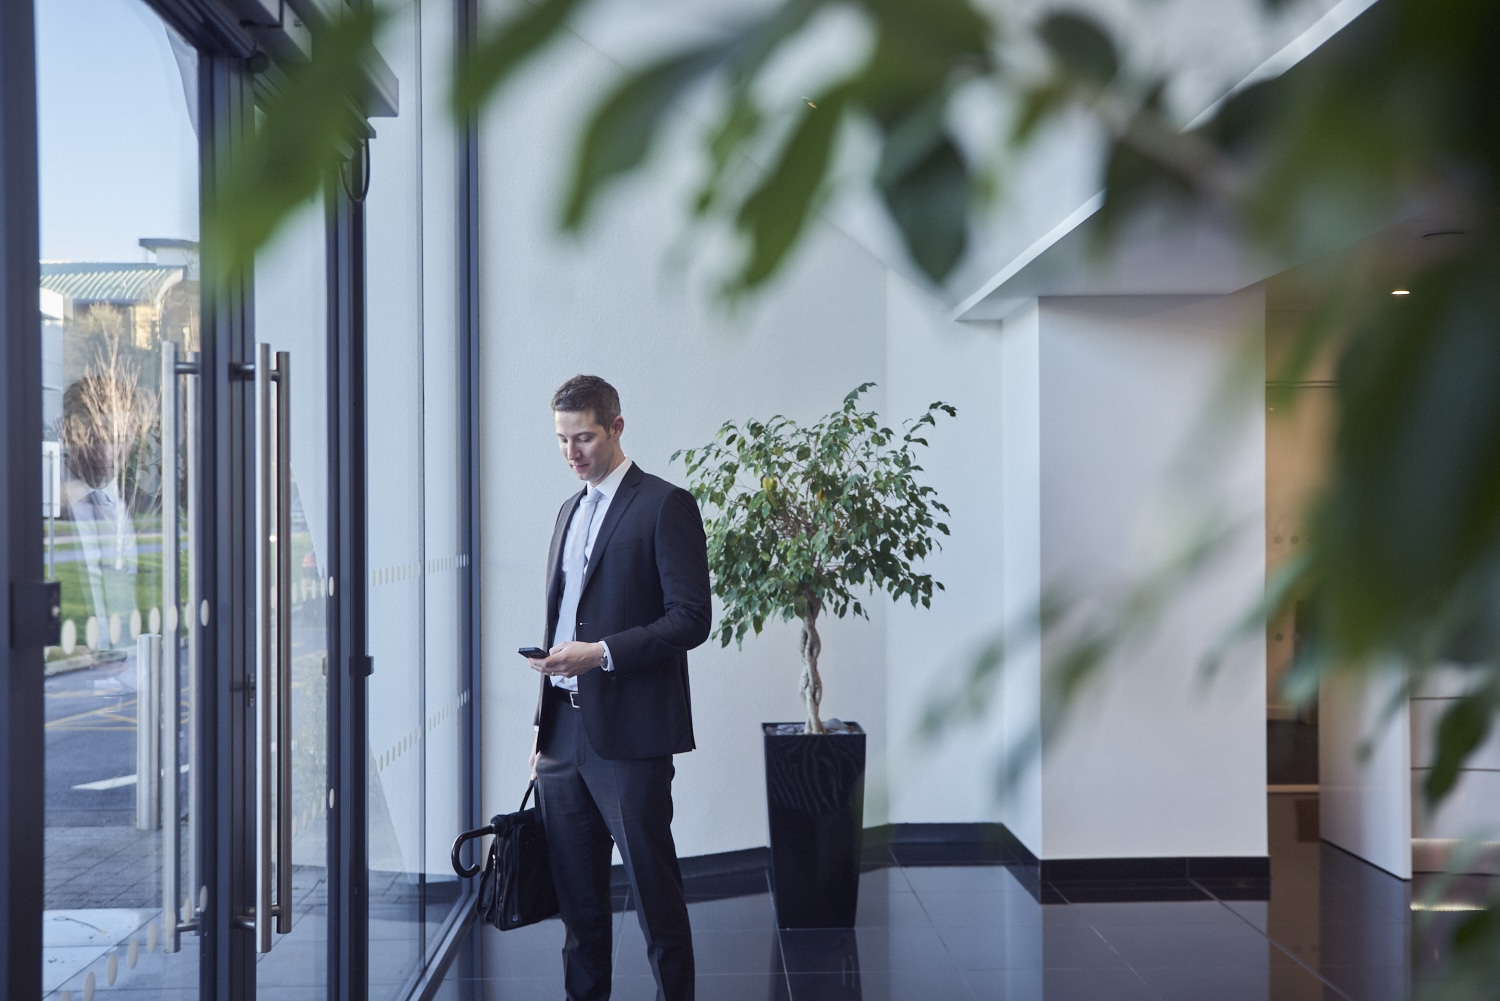 Man in a suit standing in an office reception using his phone